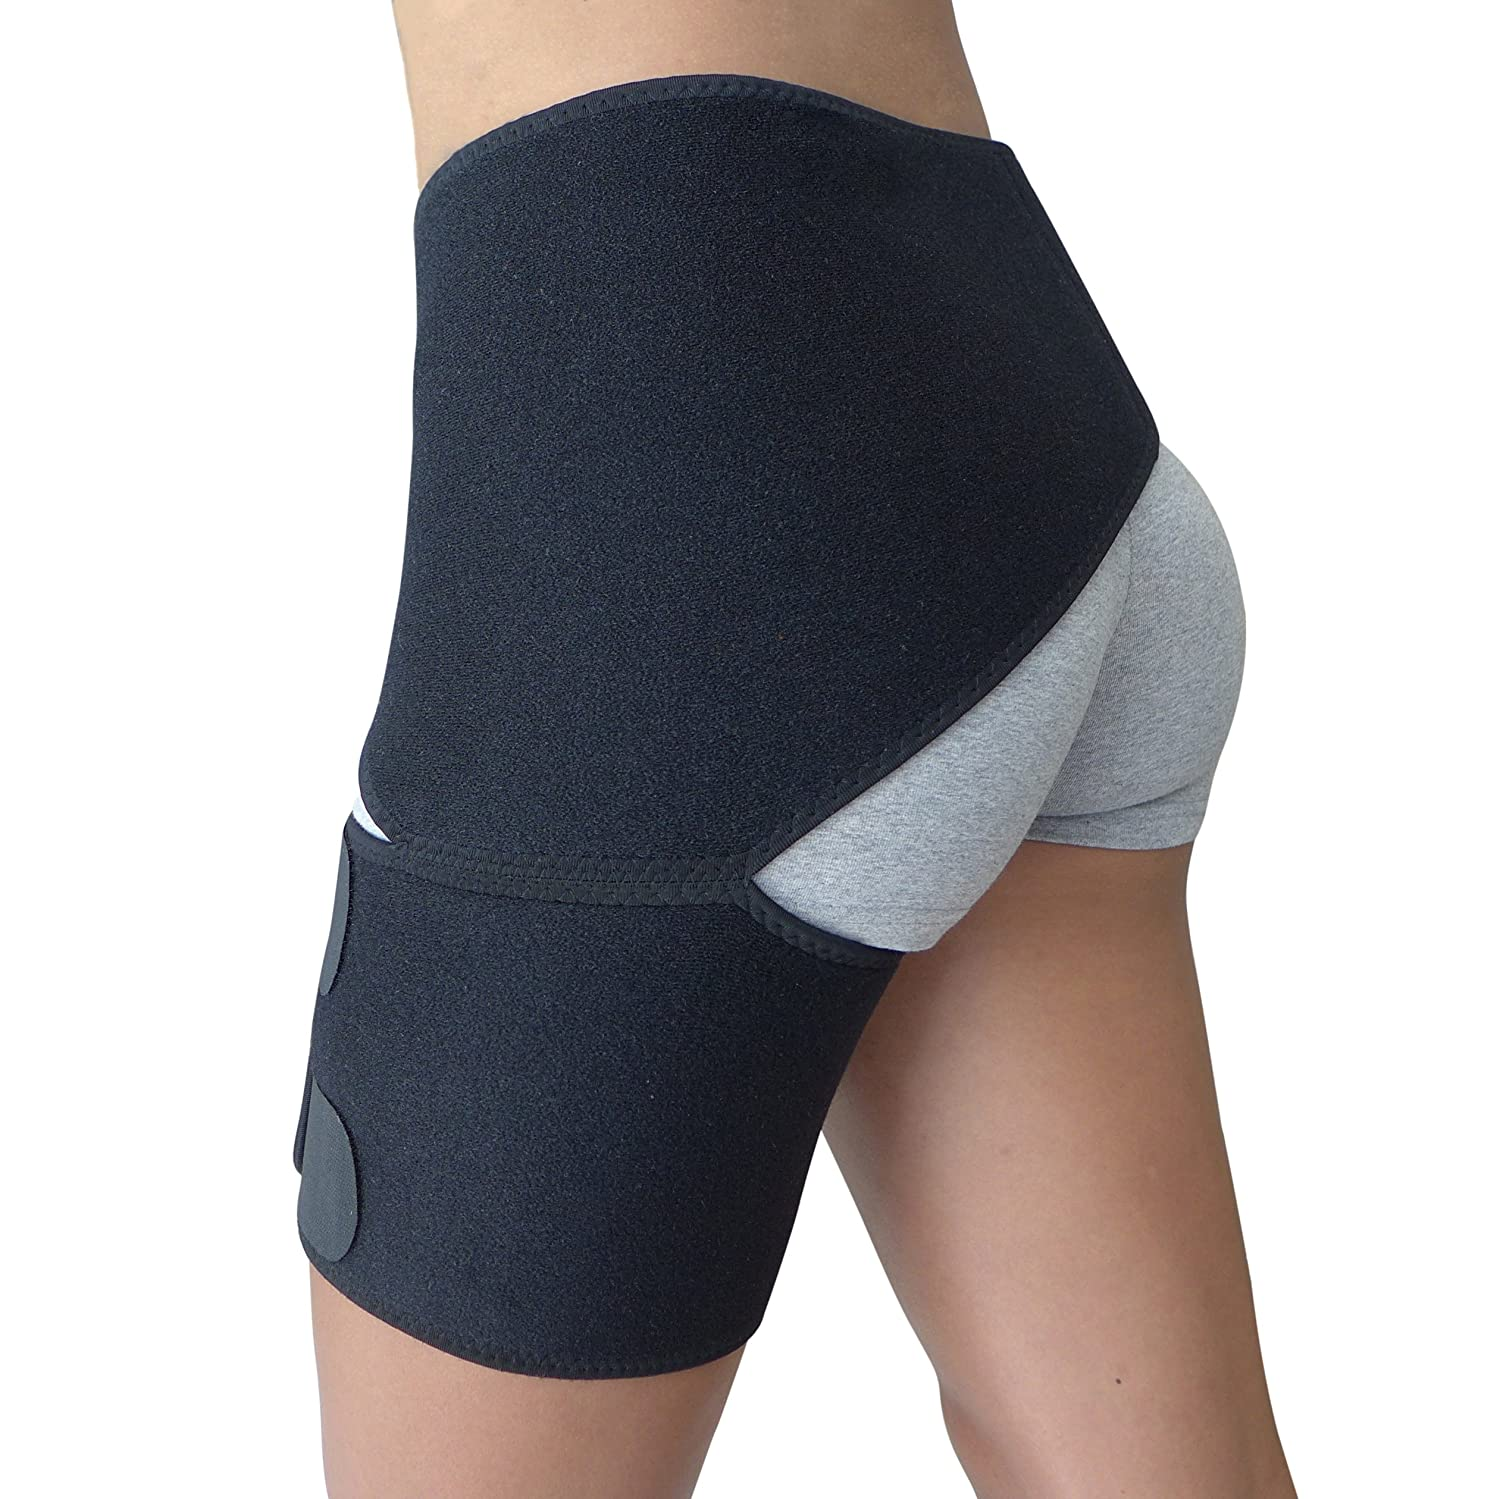 be6f967735 Amazon.com: Hip Brace - Groin Support for Sciatica Pain Relief Thigh  Hamstring Quadriceps Hip Arthritis - Best Compression Groin Wrap for Pulled  Muscles Hip ...